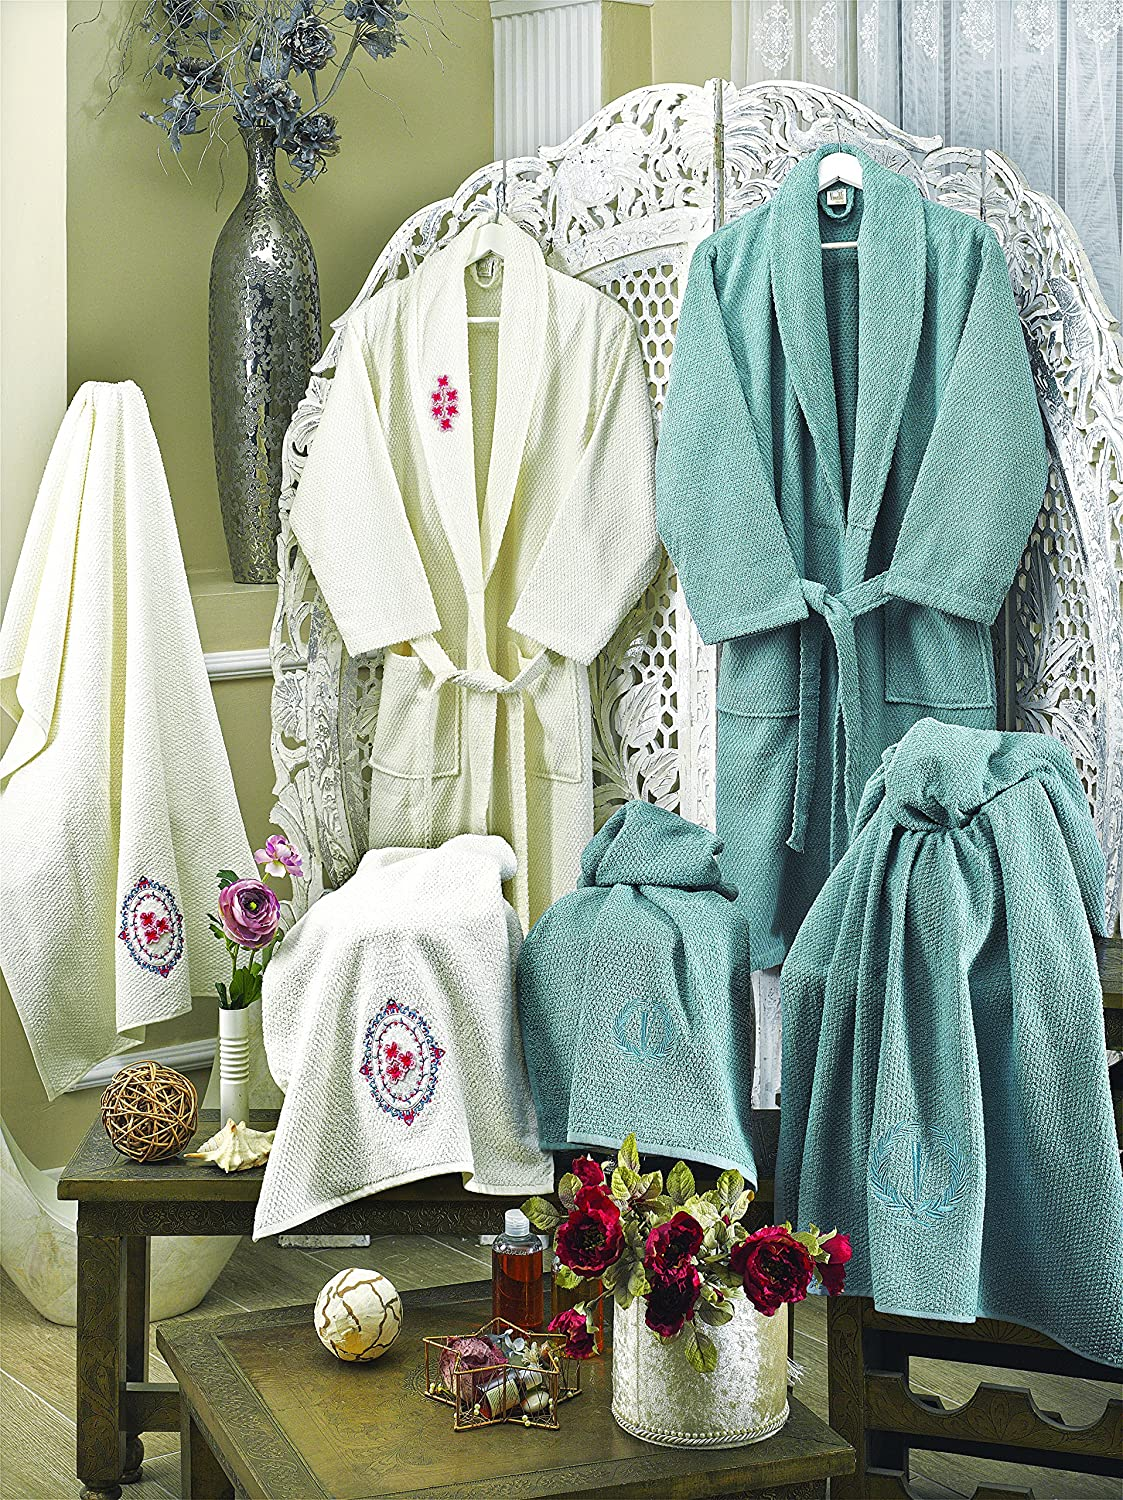 Luxurious Plush Durable Set of Robes,Hotel and spa Robes for Men//Women Turkish papatya Bathrobe Set 6 psc Soft